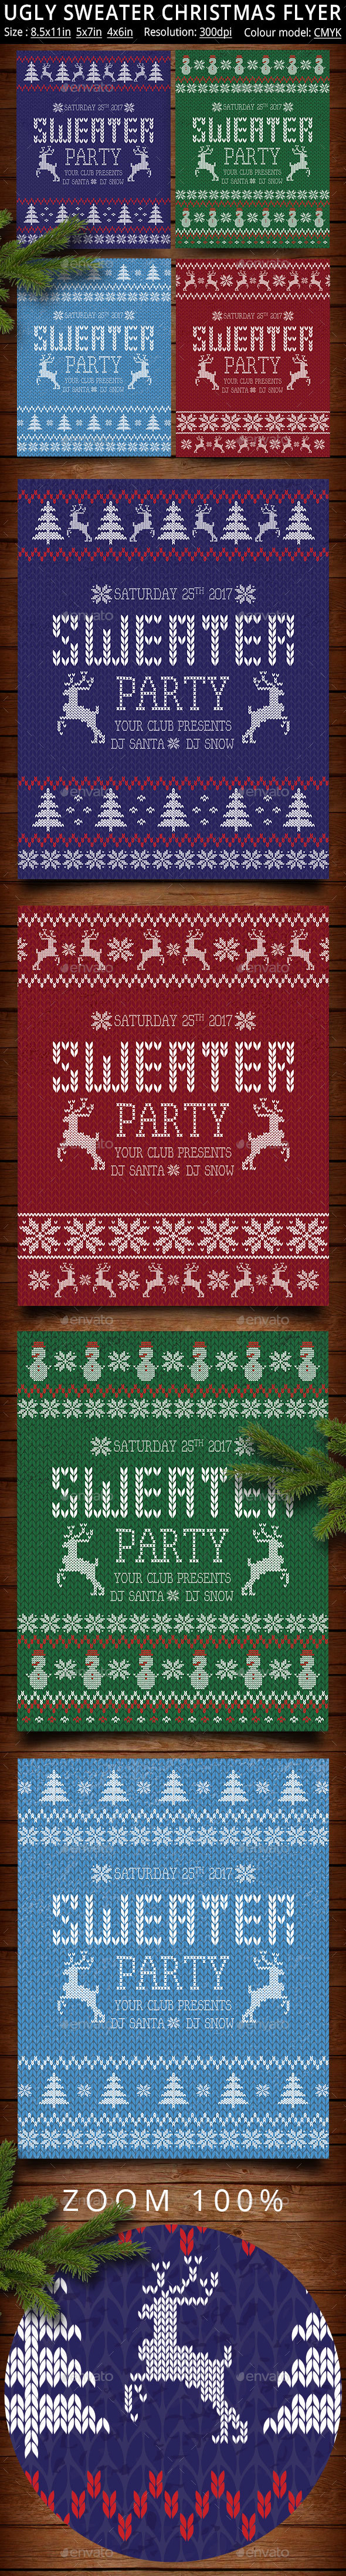 Ugly Sweater Christmas Party Poster - Clubs & Parties Events